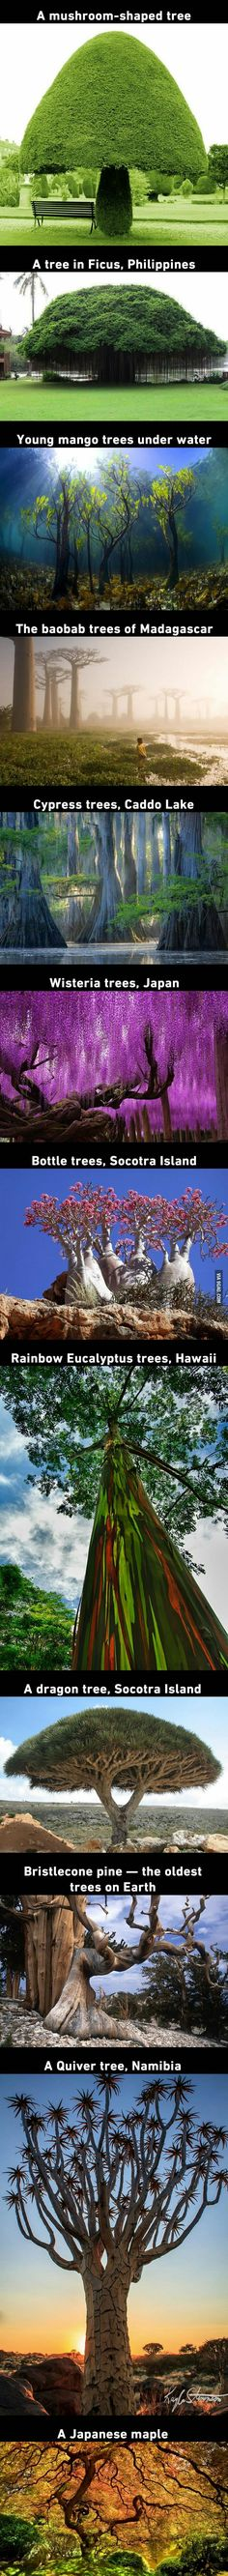 12 Beautiful Trees That You'd Thought They Grow On Pandora From Avatar - Garden Types All Nature, Amazing Nature, Nature Quotes, Nature Tree, Beautiful Places To Travel, Beautiful World, Beautiful Beautiful, Pandora, Garden Types